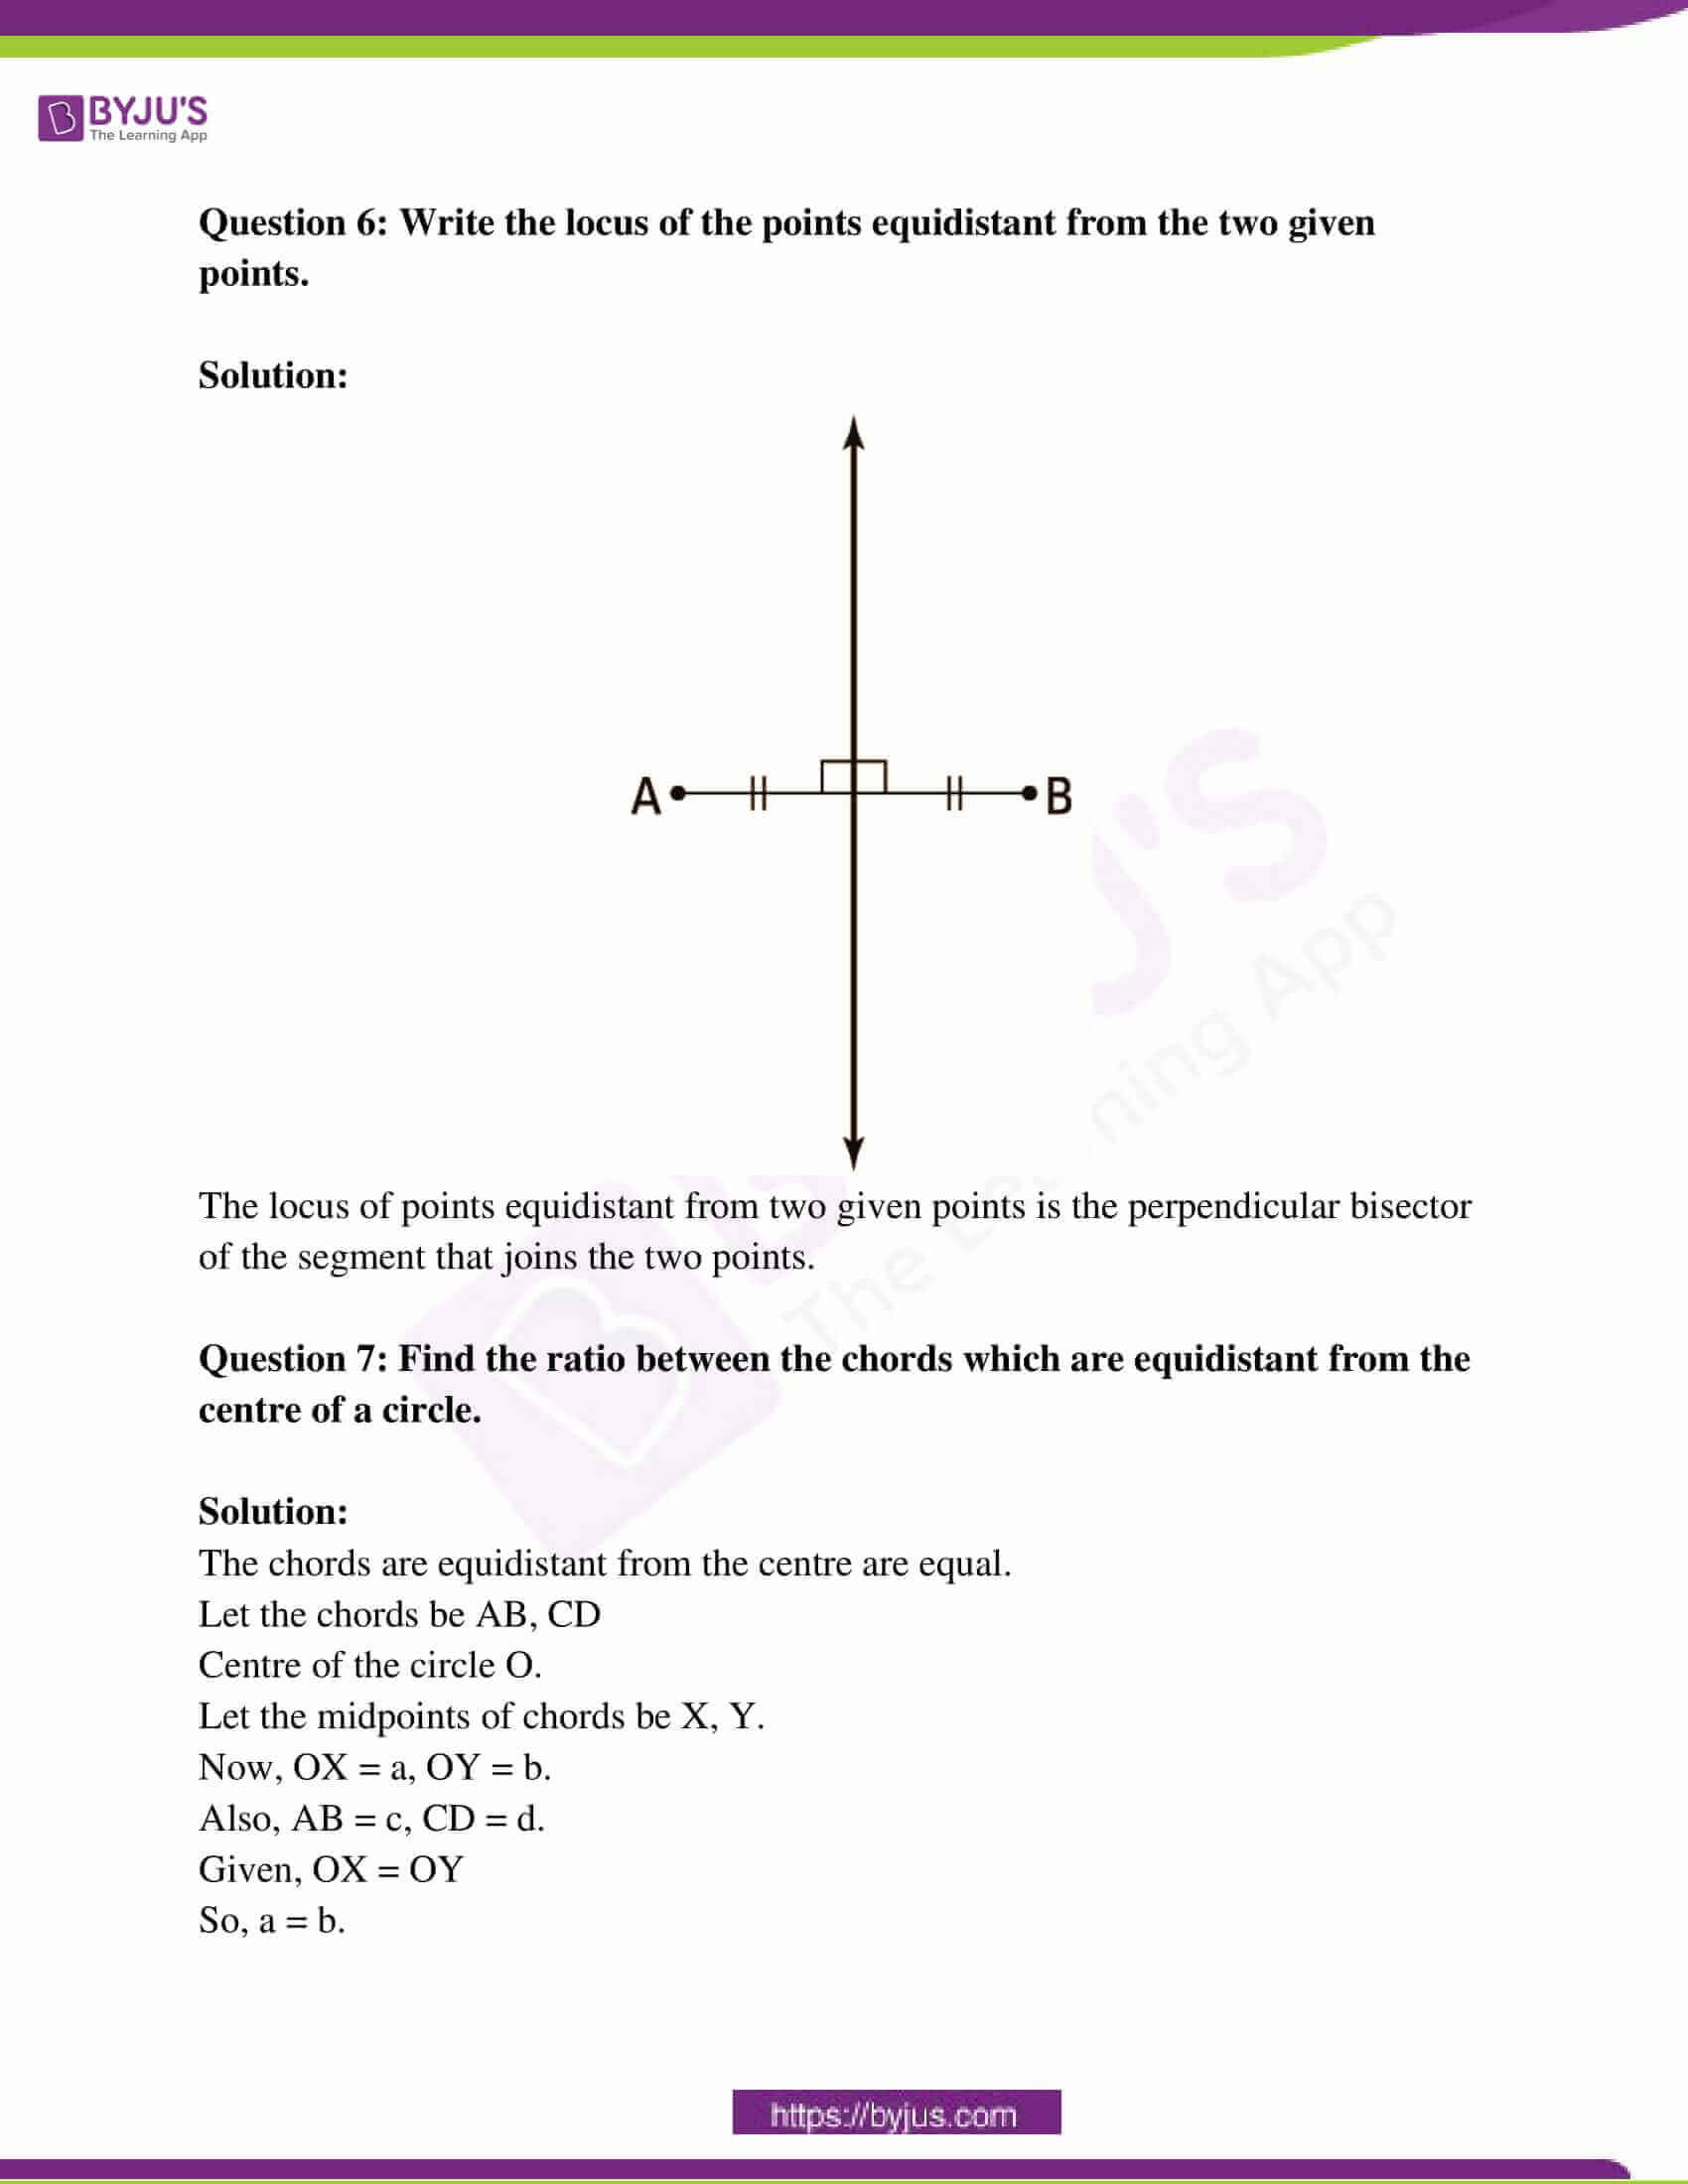 rajasthan board class 10 examination question paper sol march 2018 03